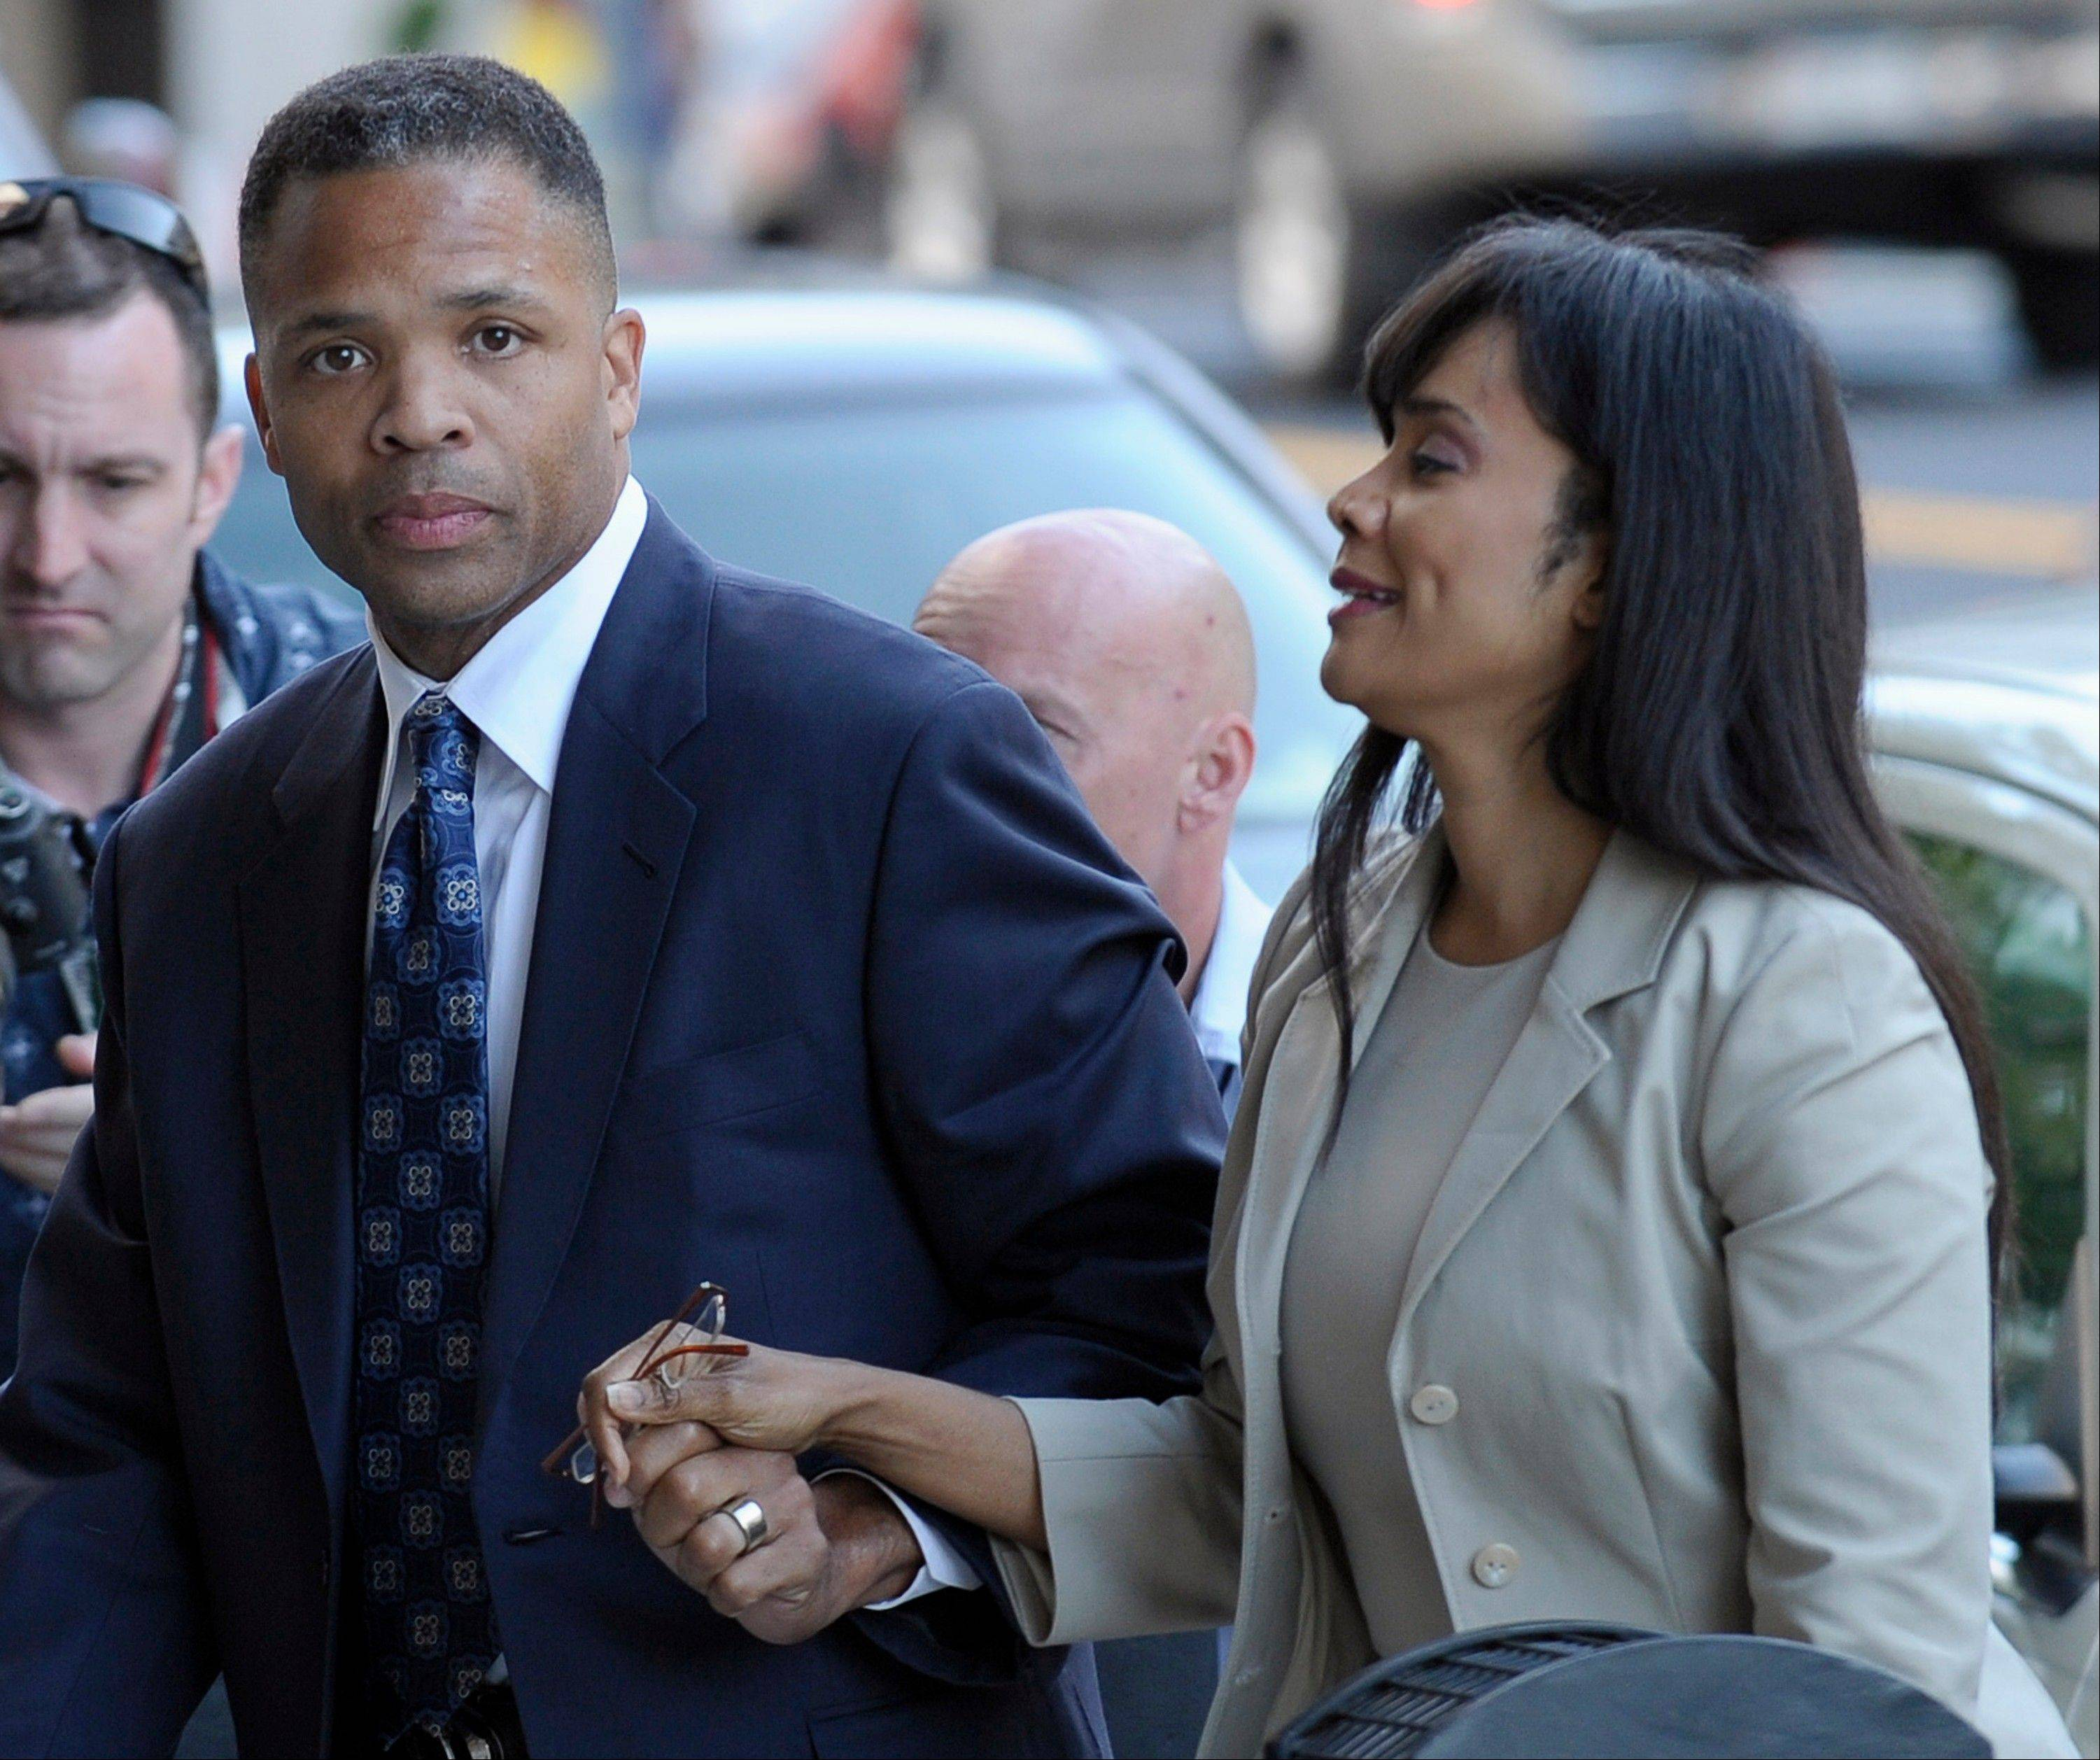 Former U.S. Rep. Jesse Jackson Jr. and his wife, Sandra, arrive at federal court in Washington on Wednesday to learn their fates for misusing $750,000 in campaign money on personal items ranging from a gold-plated Rolex watch and mink capes to vacations and mounted elk heads.